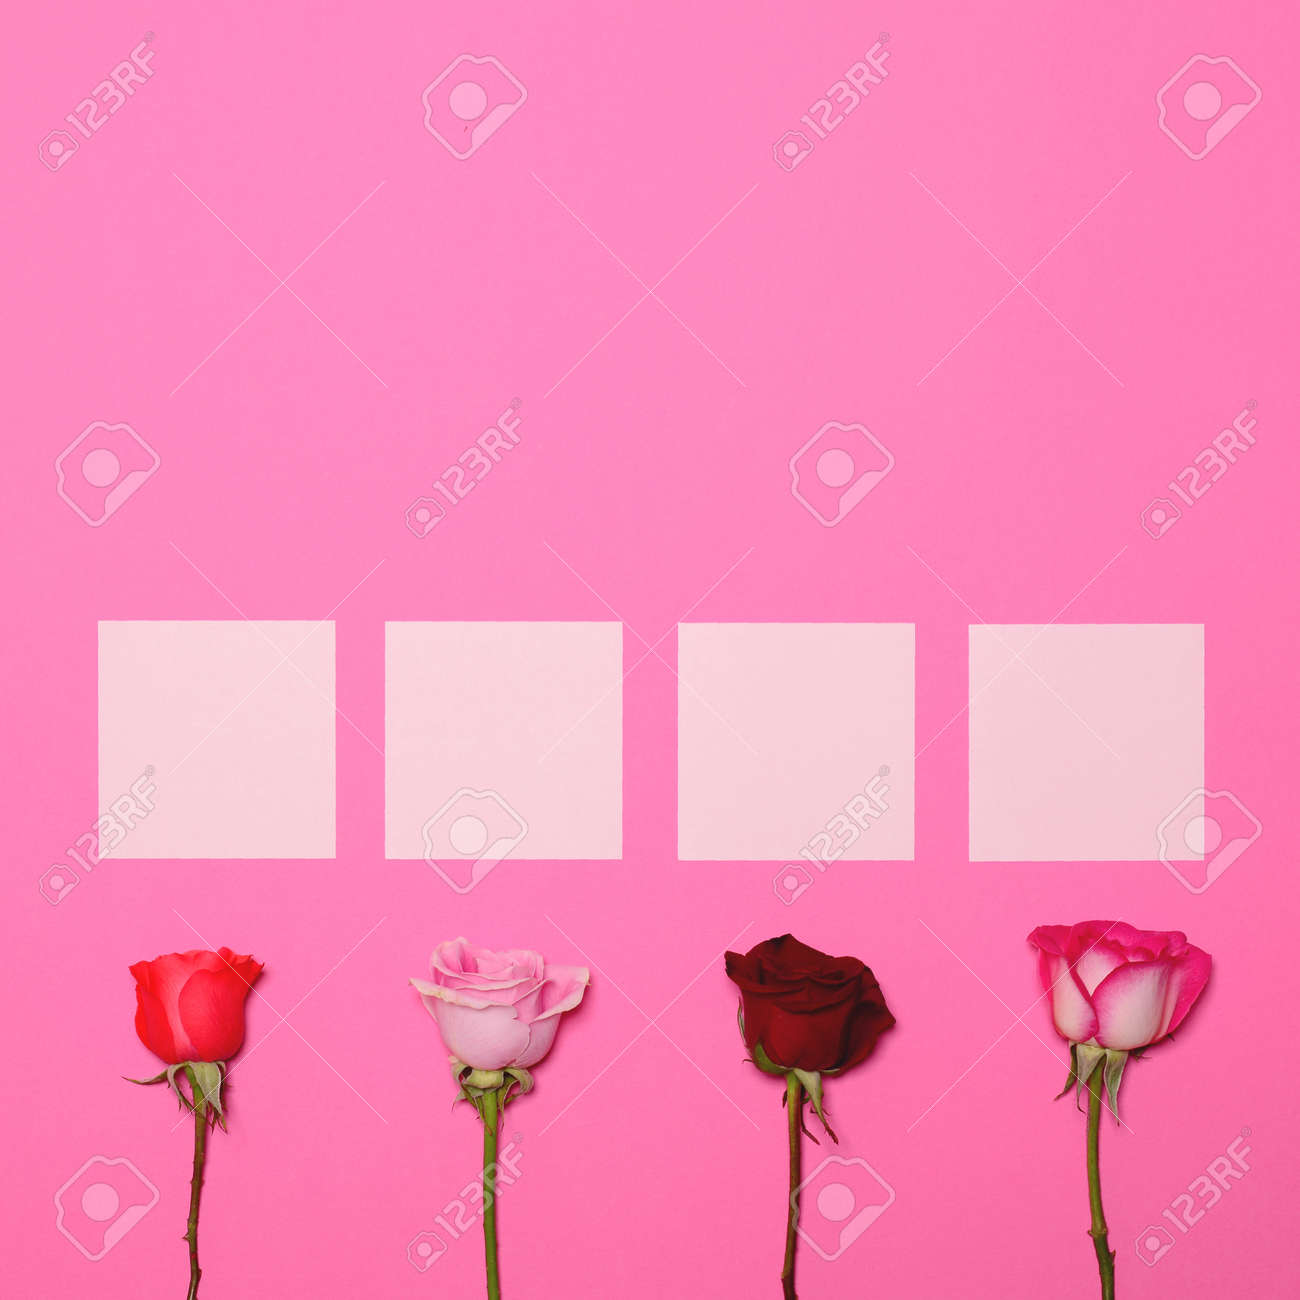 Four Roses On Pastel Pink Background With Blank Papers Above